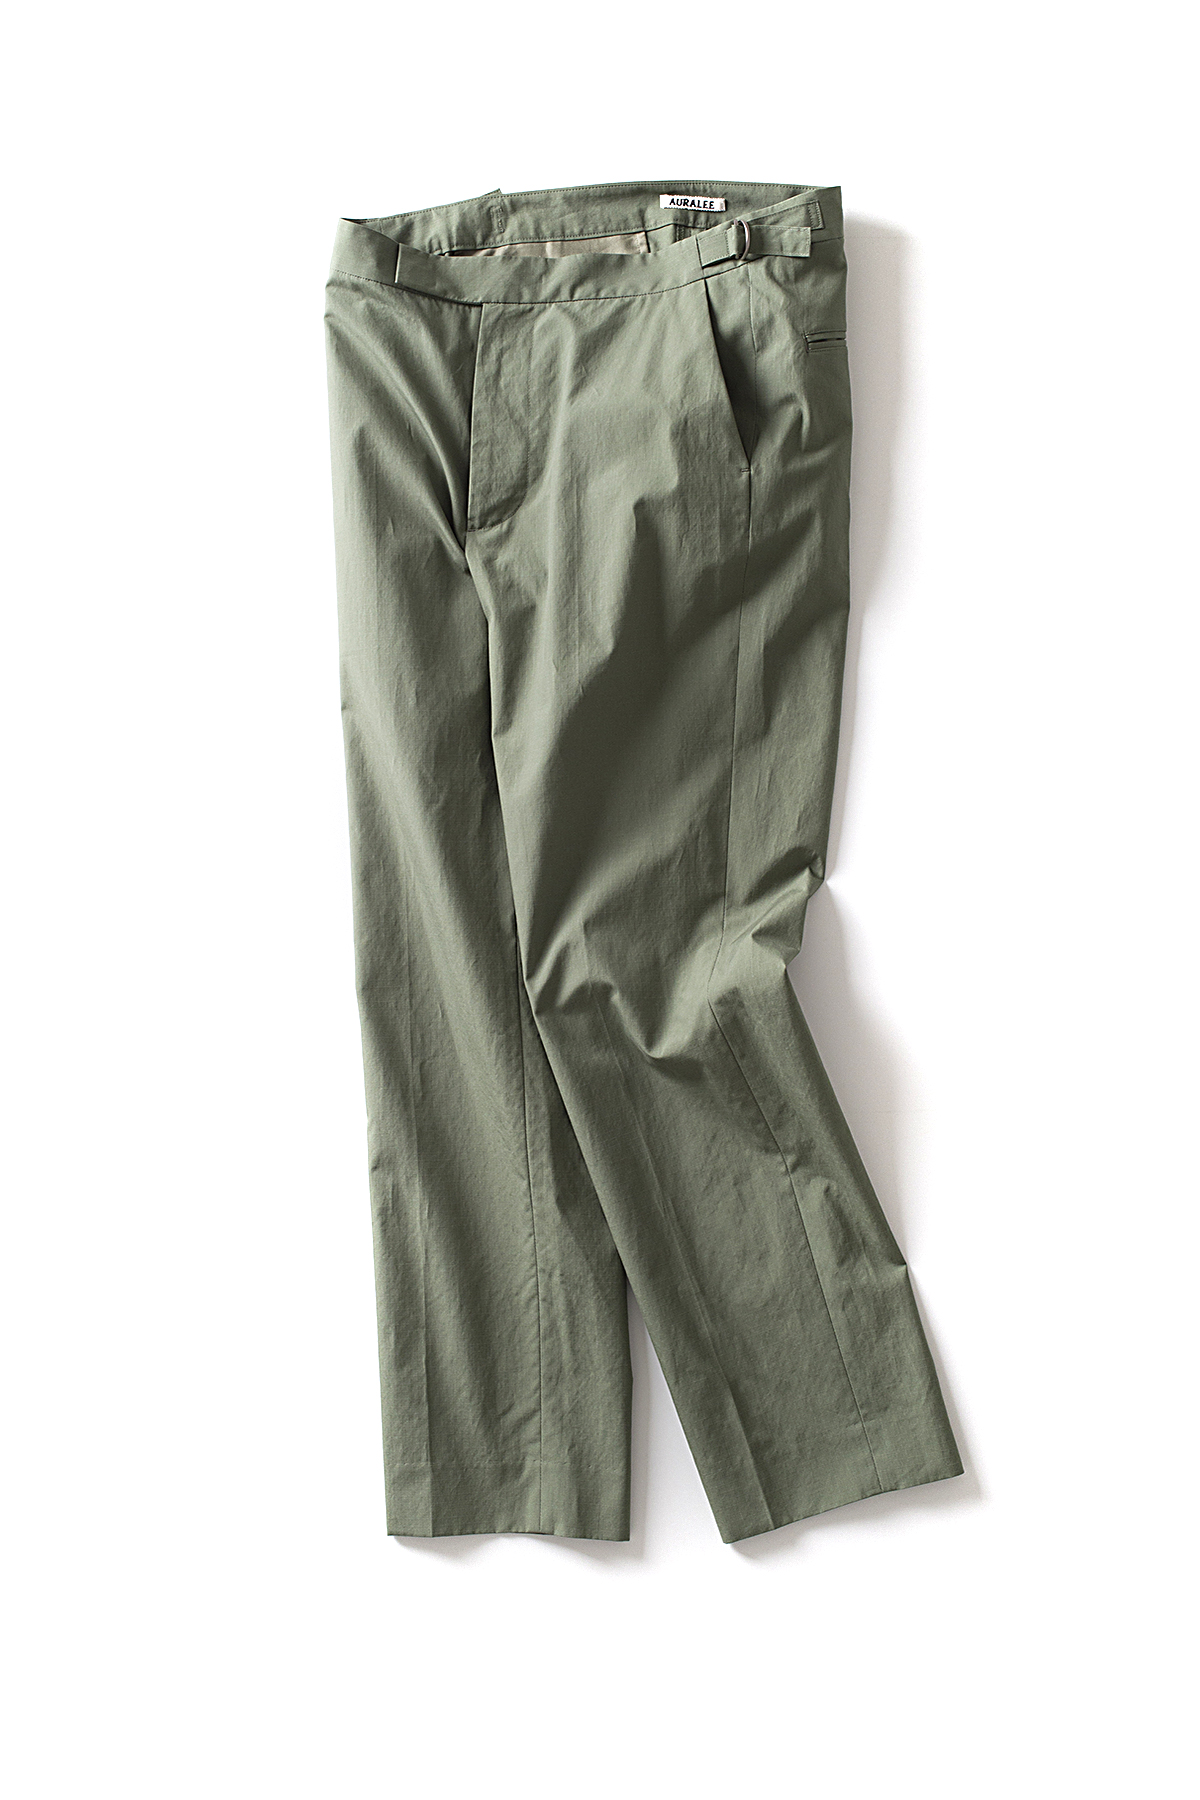 Auralee : Washed Finx Ripstop Slacks (Olive Green)